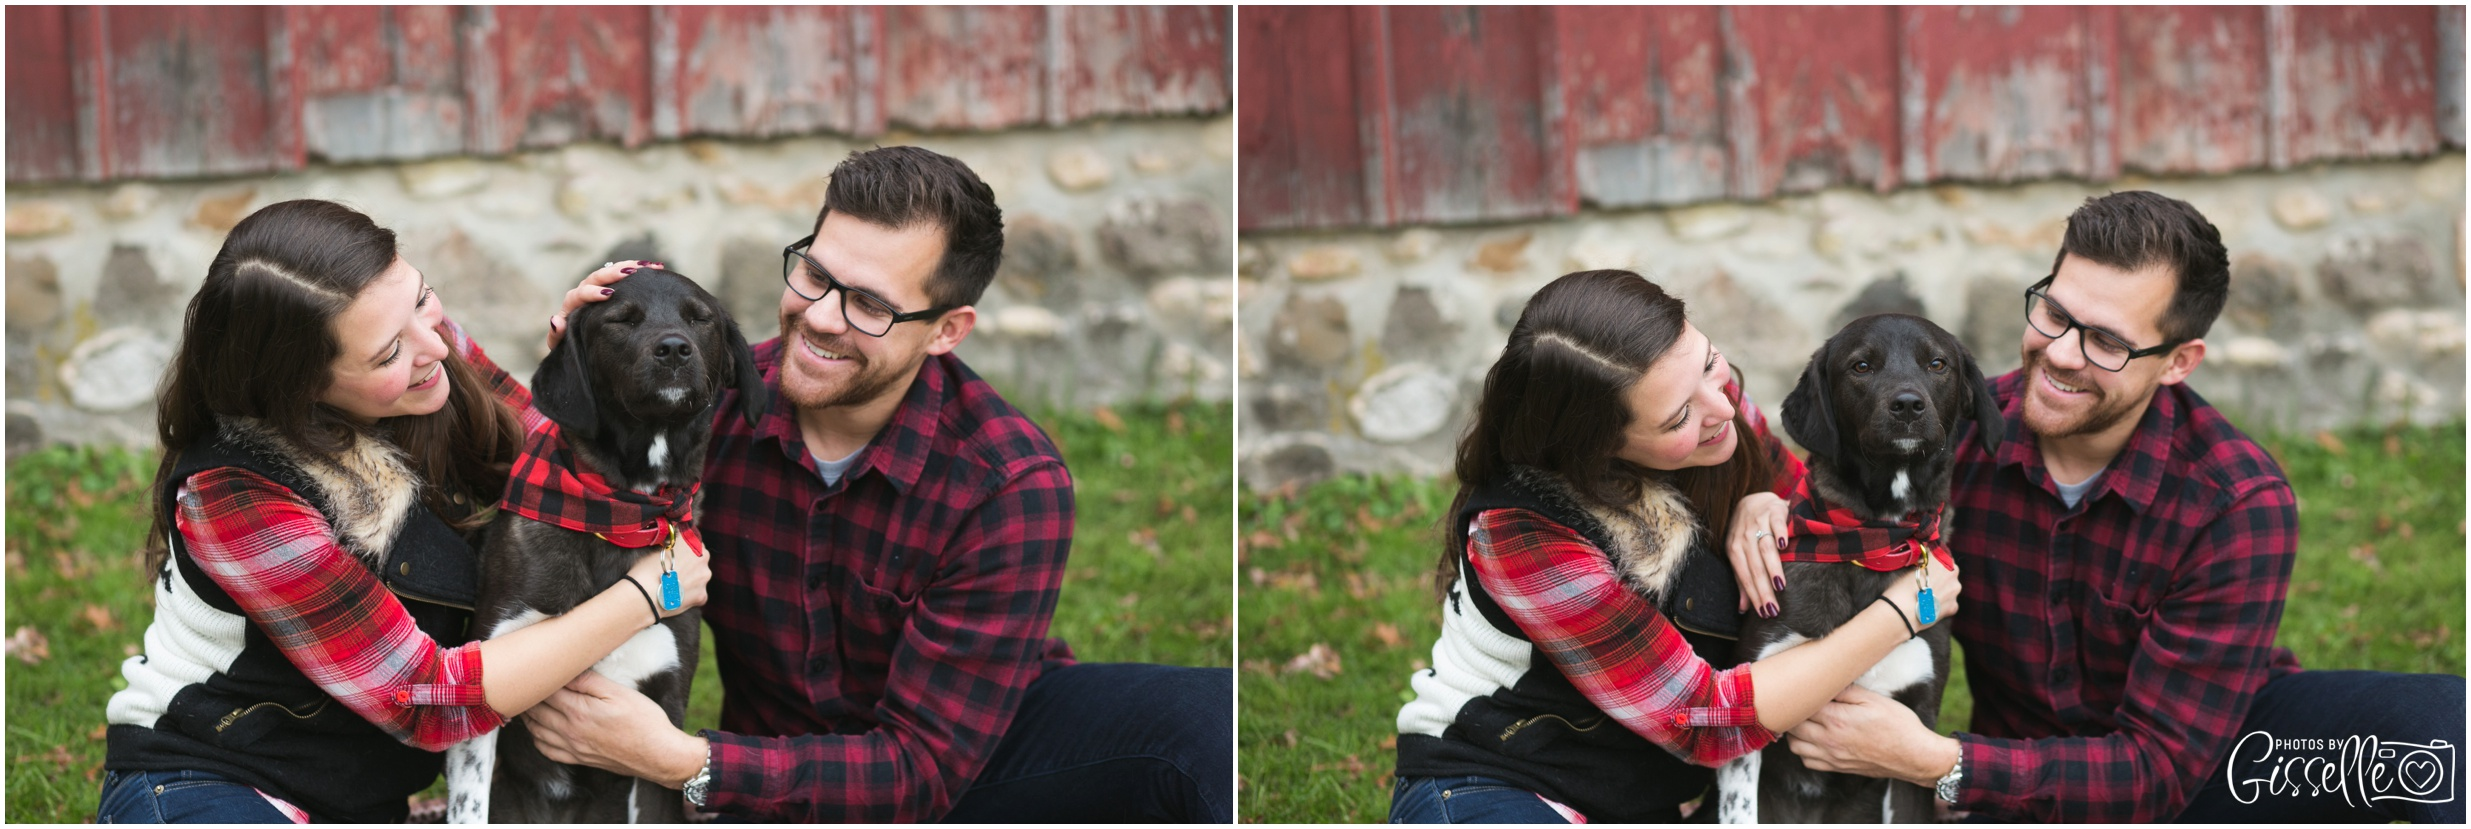 Oswego Engagement Photographer_0049.jpg